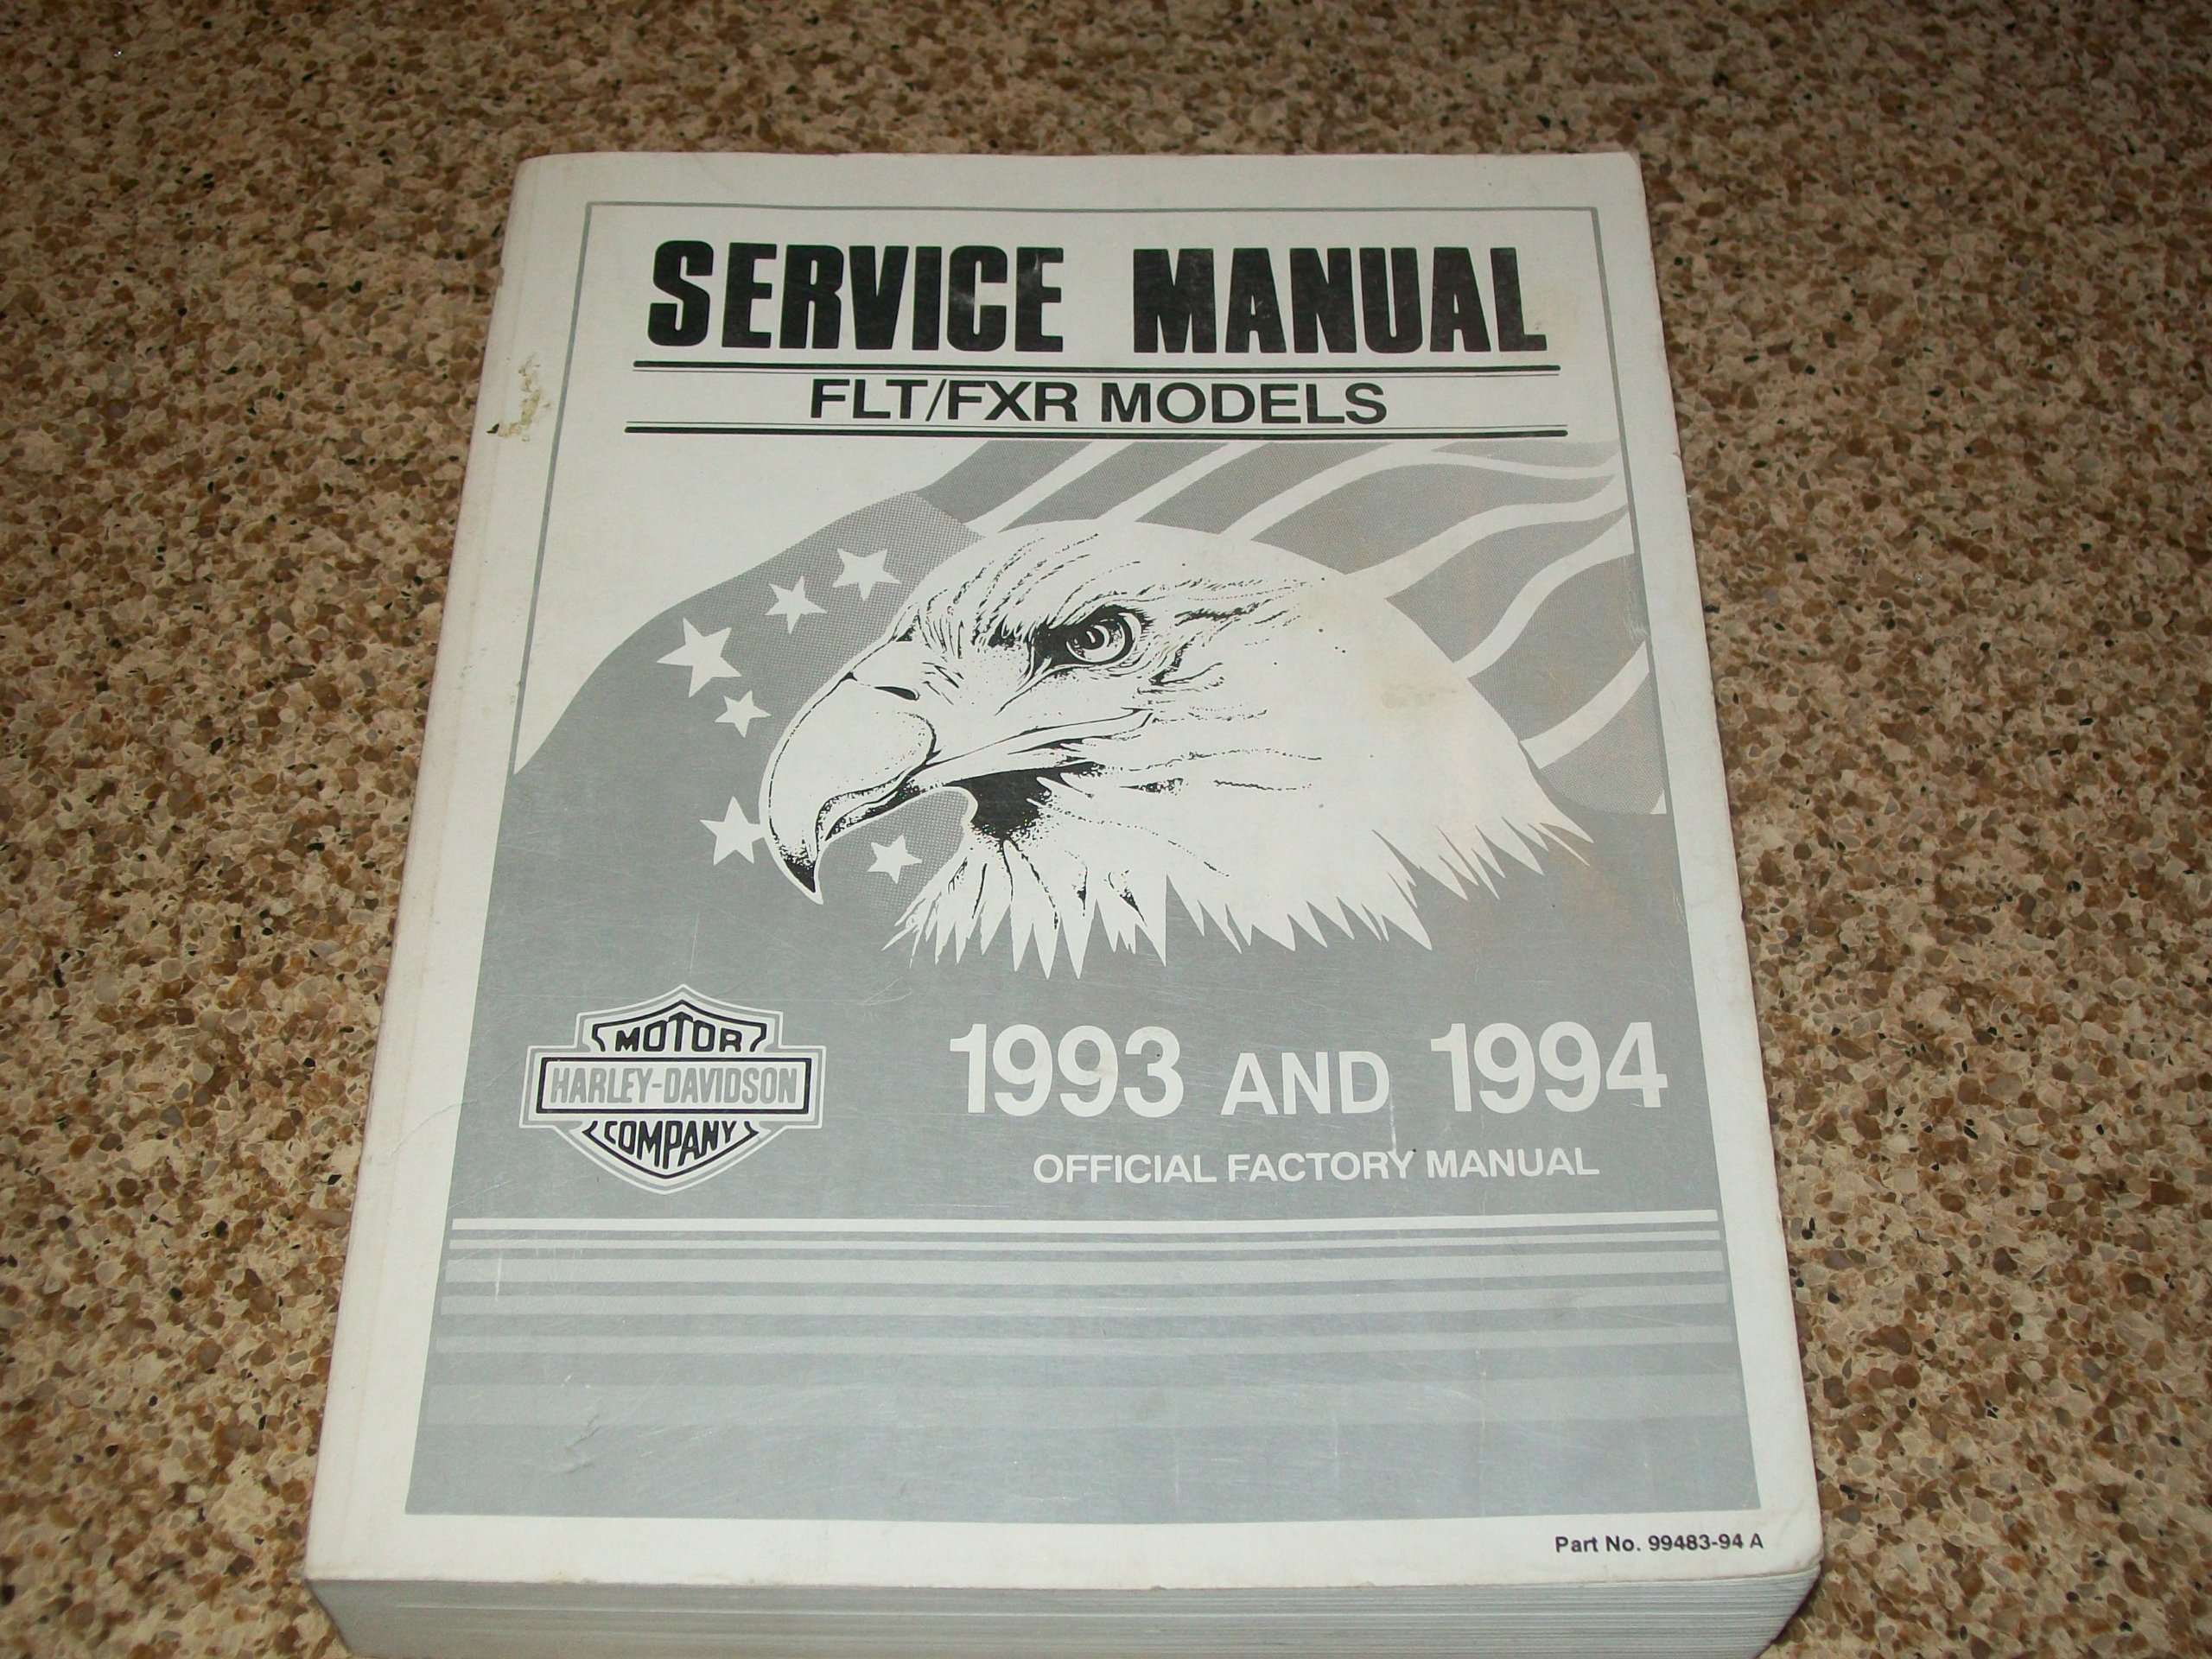 Harley Davidson Service Manual. FLT/FXR Models. 1993 and 1994. (Official  Factory Manual: Amazon.com: Books